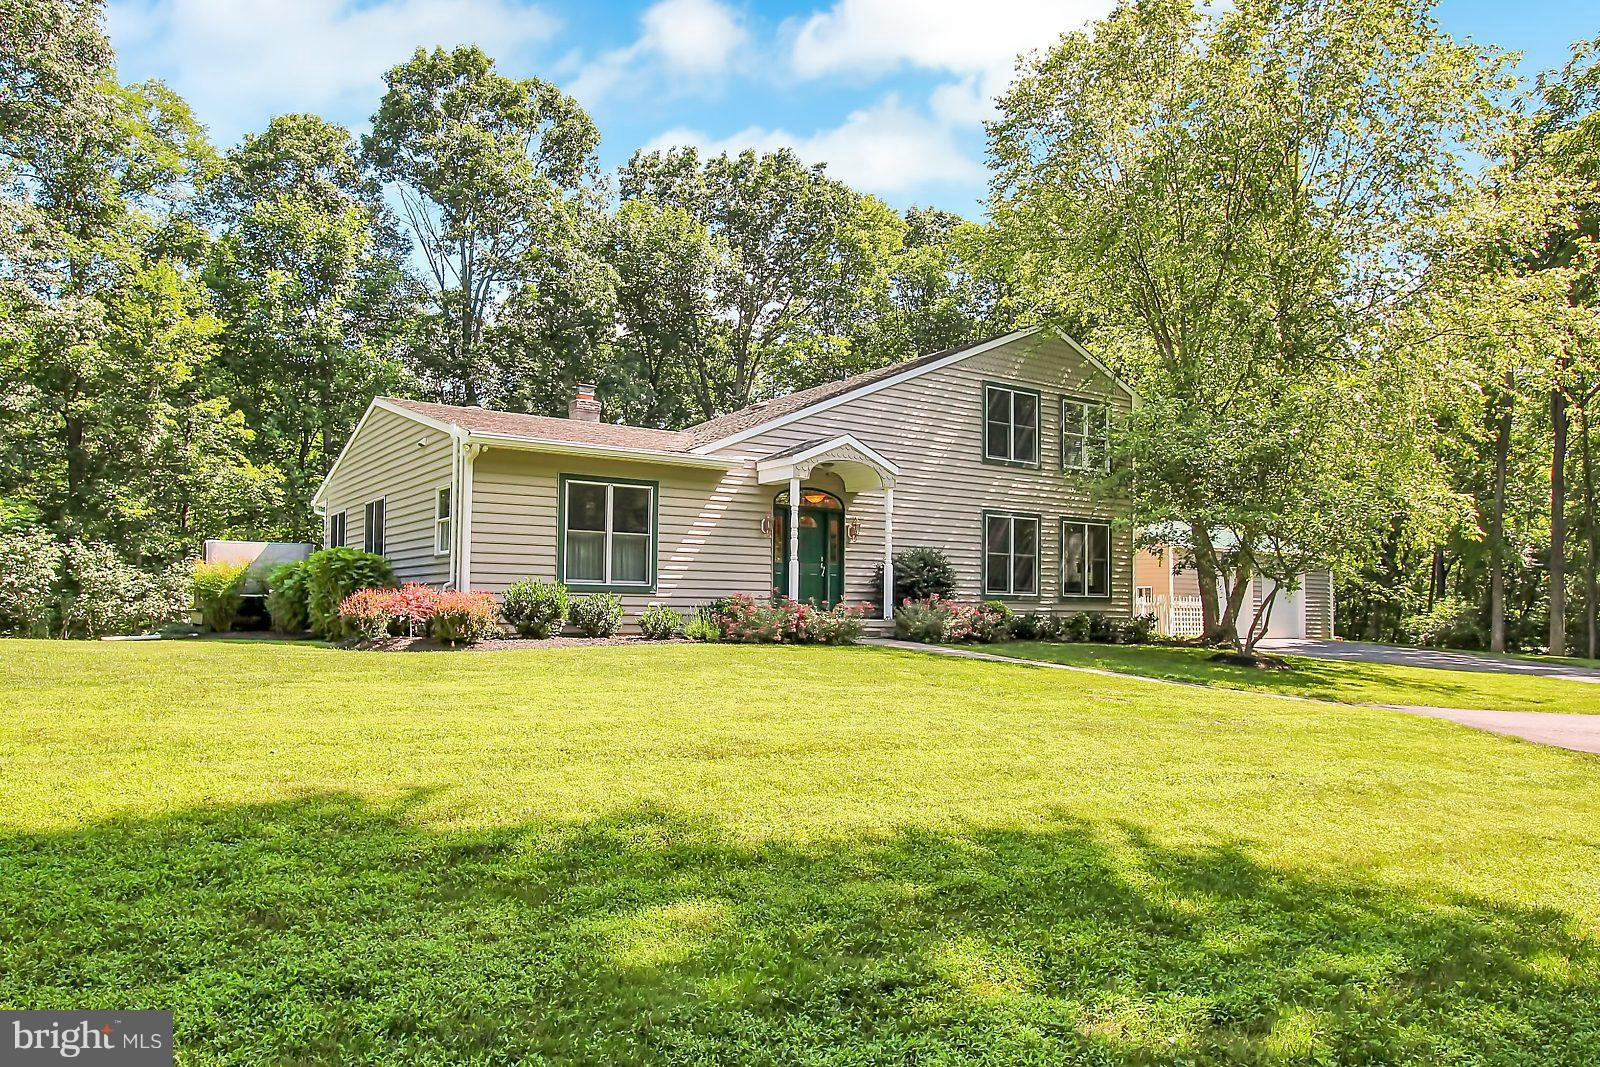 1718 HUNTER MILL ROAD, WHITE HALL, MD 21161